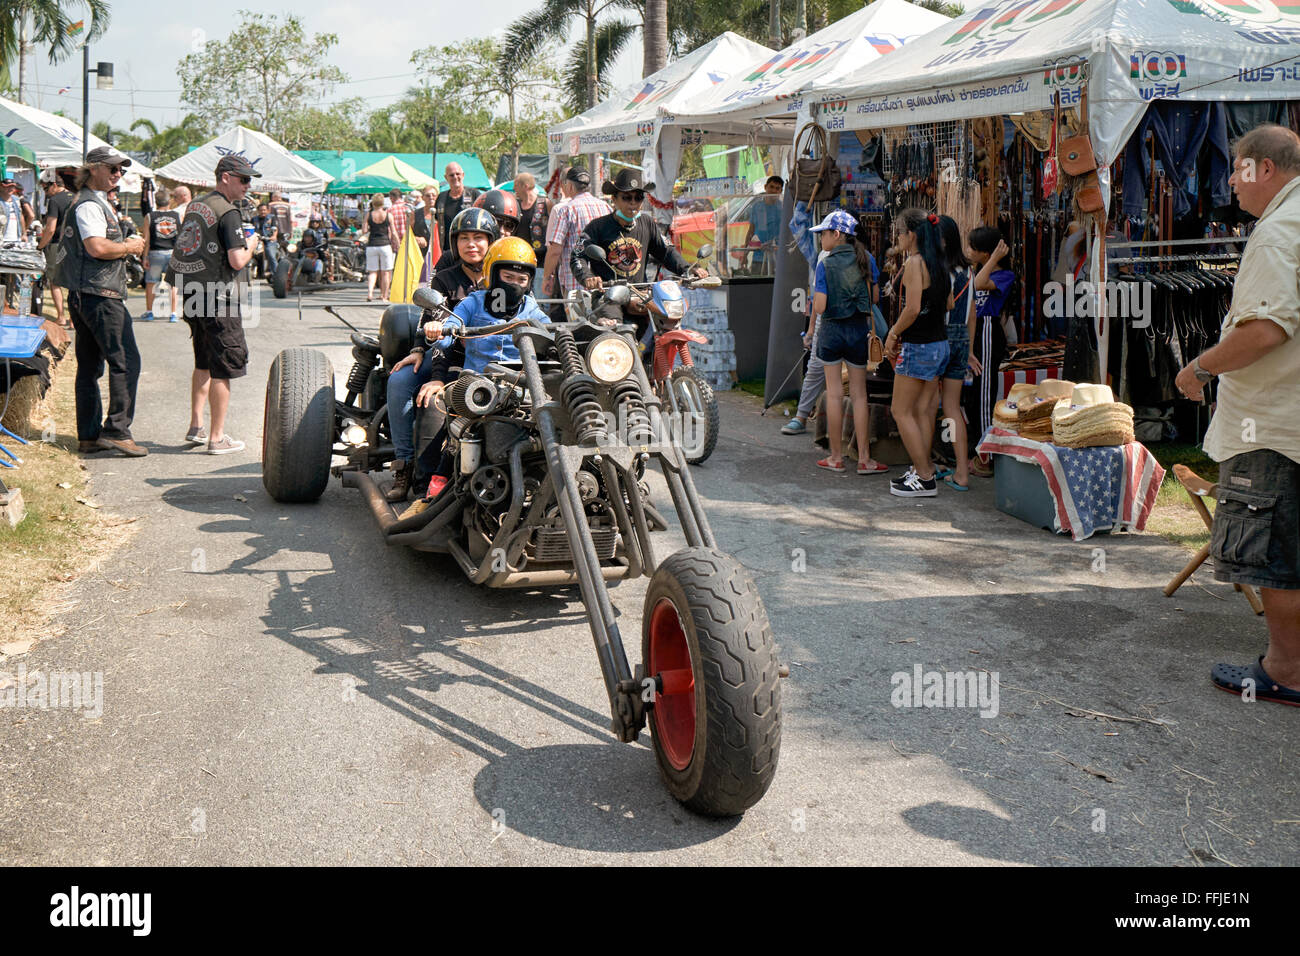 Extremely stretched custom chopper motorcycle at the 2016 Burapha biker festival Pattaya Thailand S. E. Asia. - Stock Image